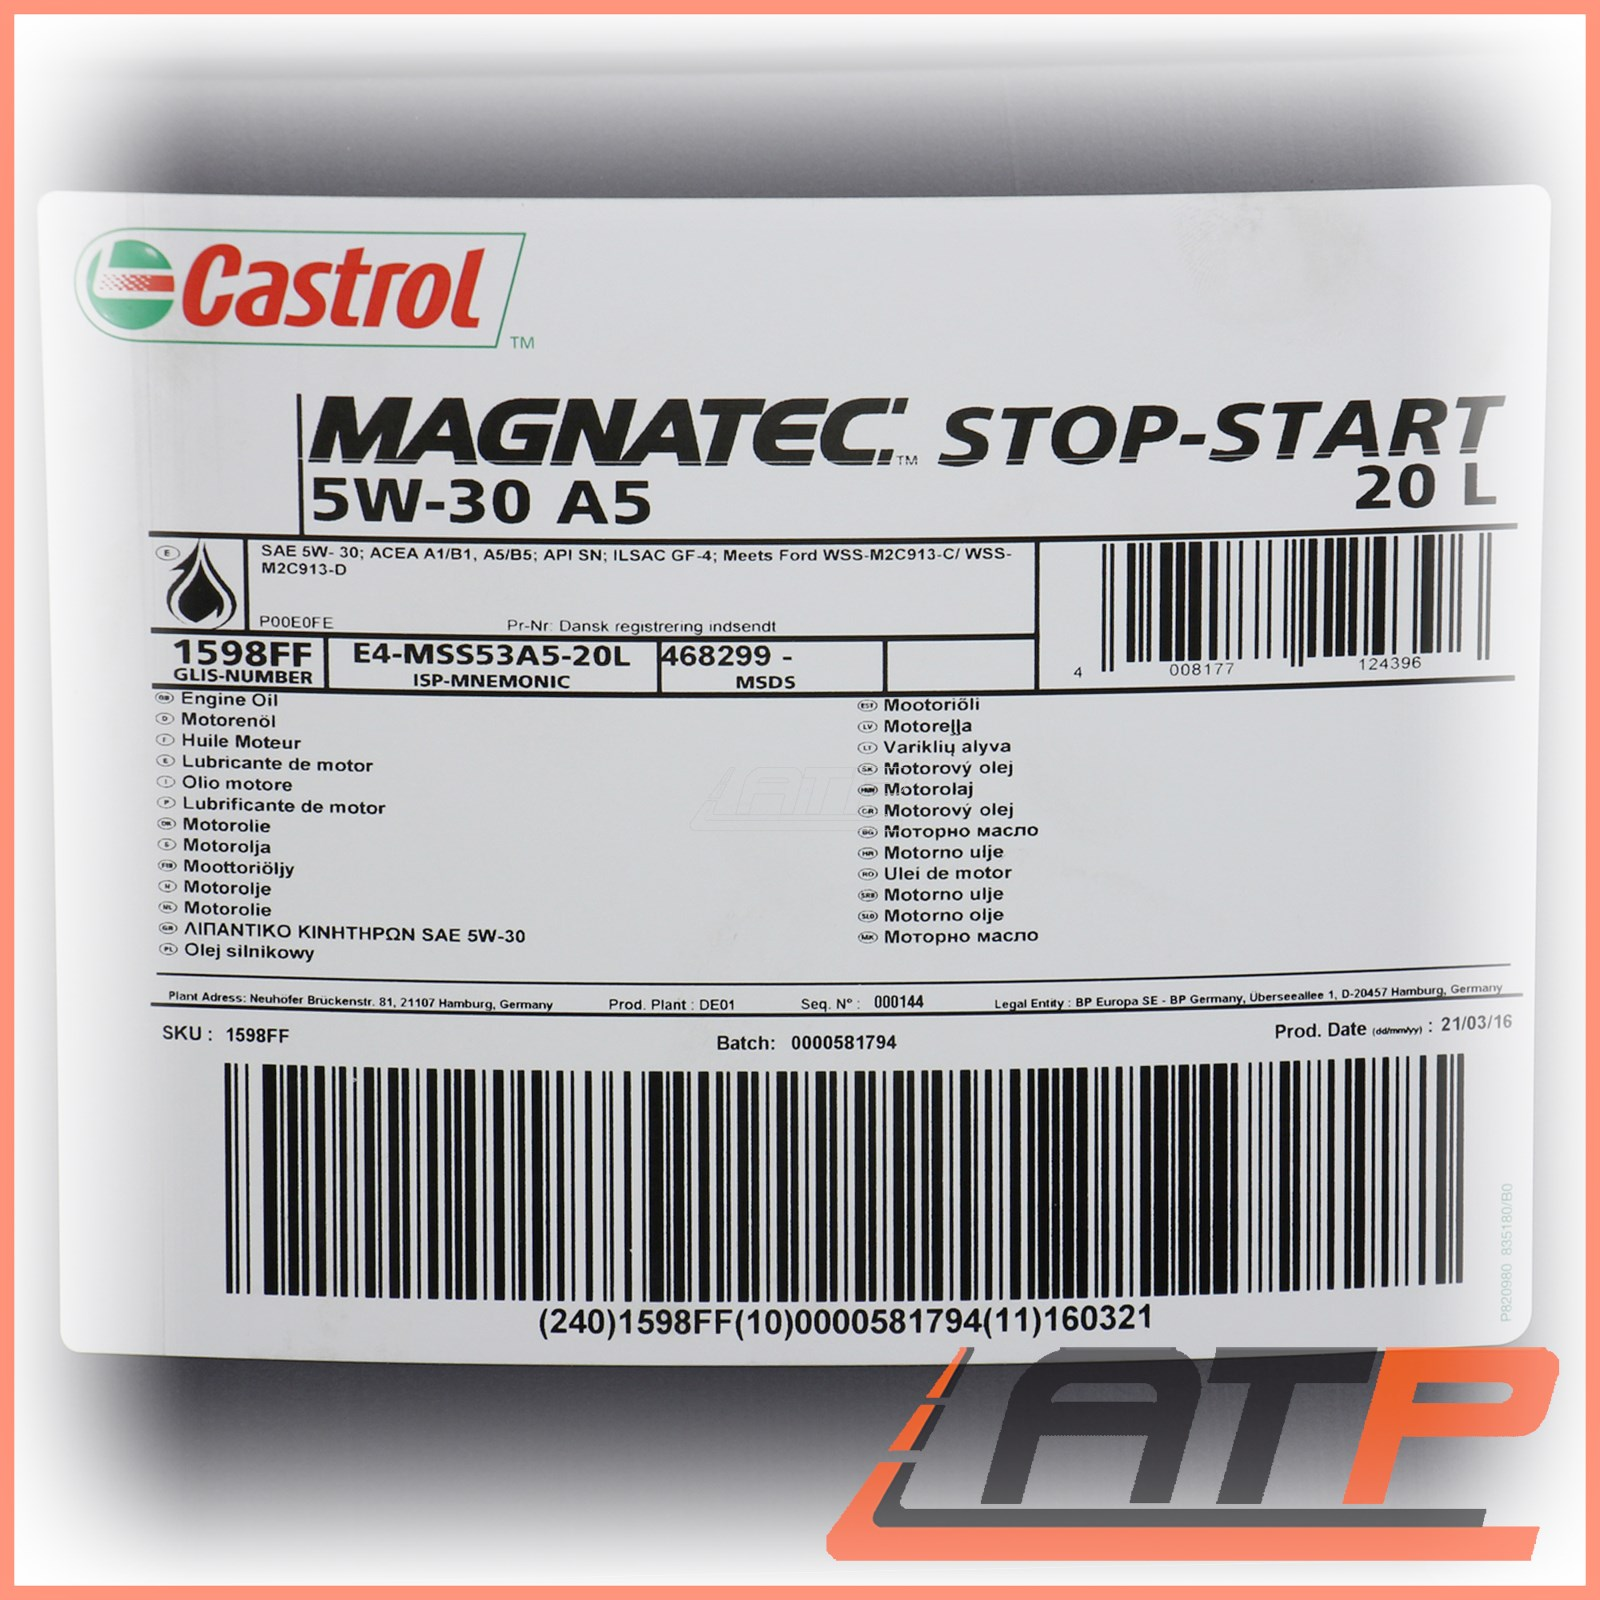 20 l litre castrol magnatec stop start 5w 30 a5 engine oil. Black Bedroom Furniture Sets. Home Design Ideas